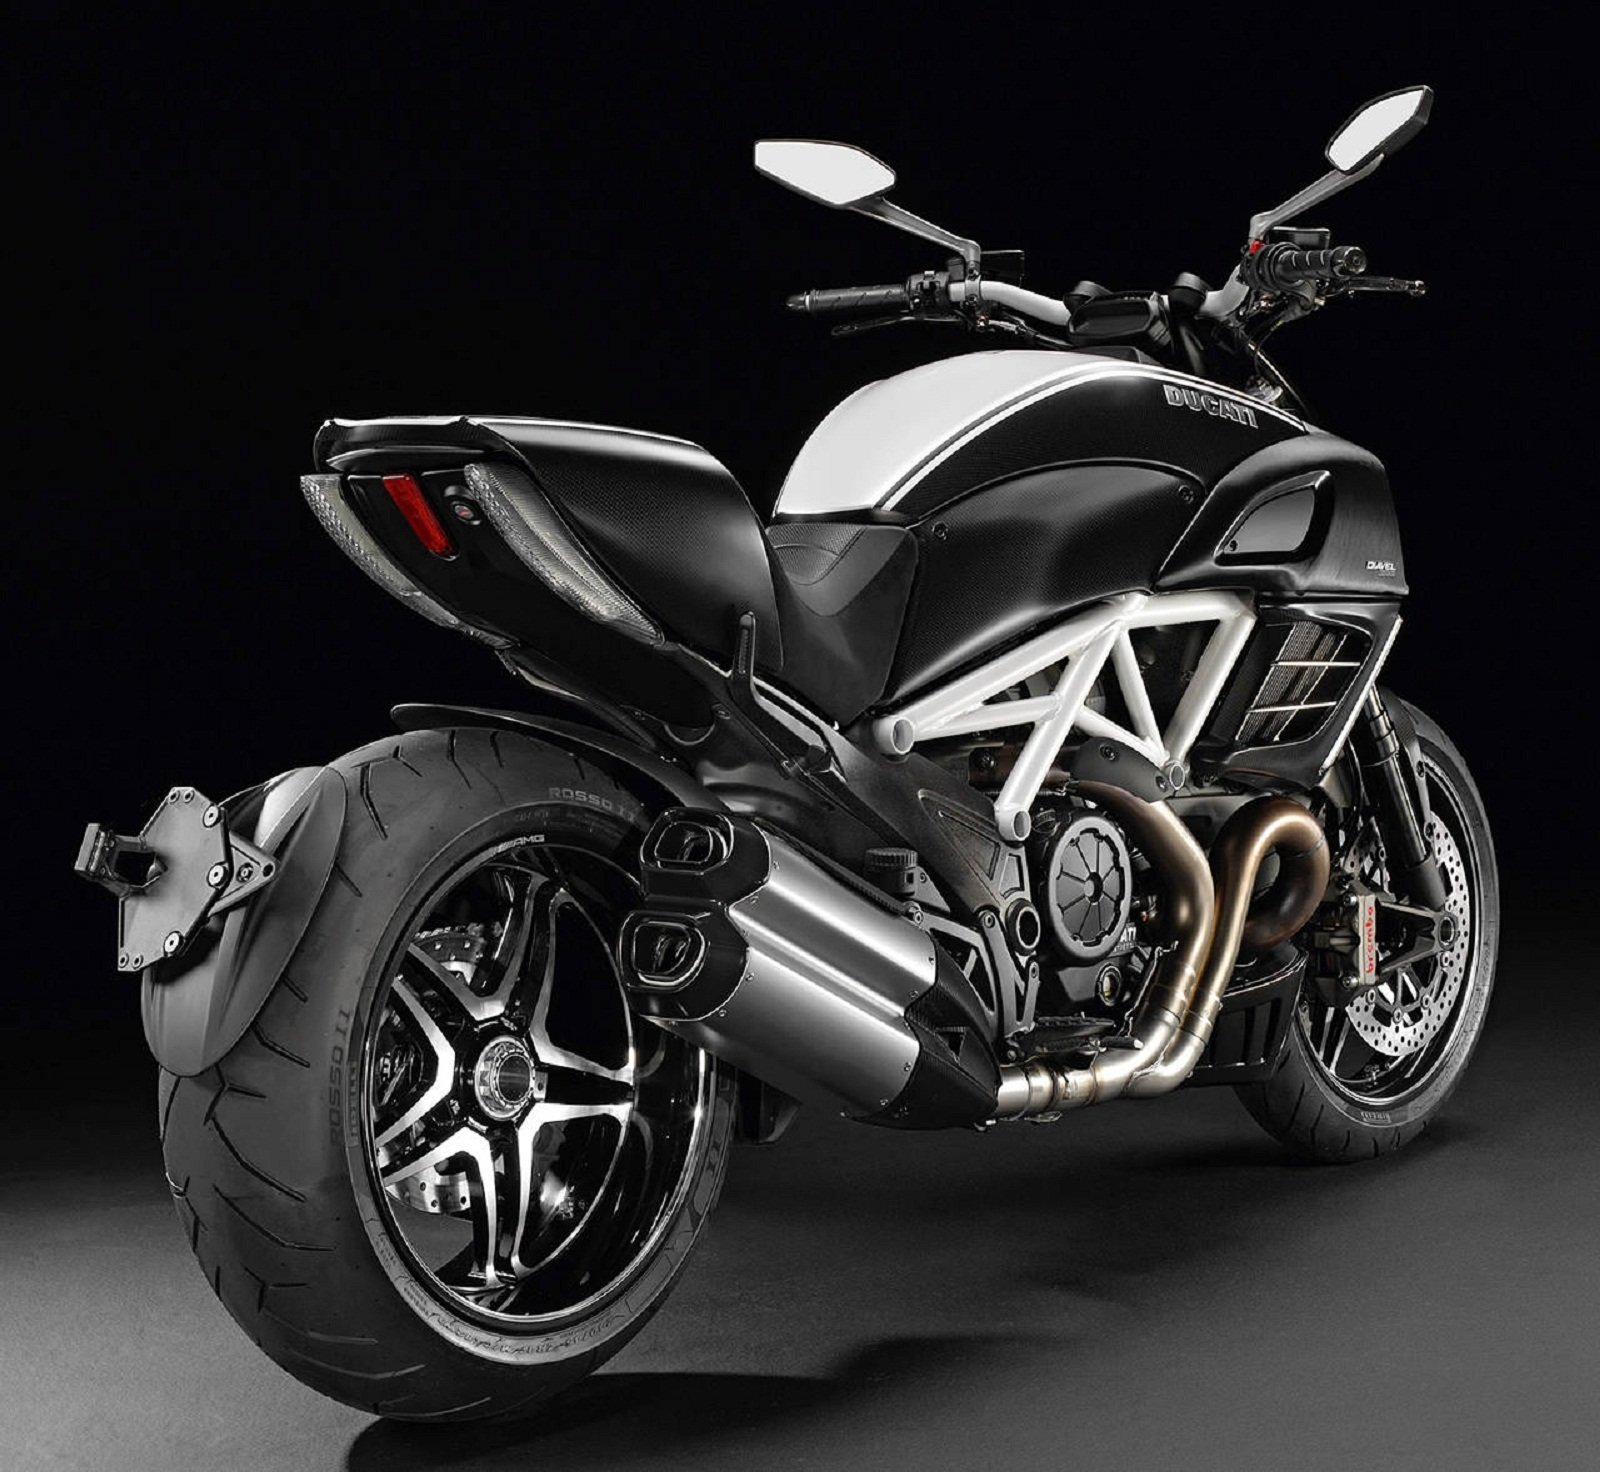 2012 Ducati Diavel AMG - Picture 439424 | motorcycle ...